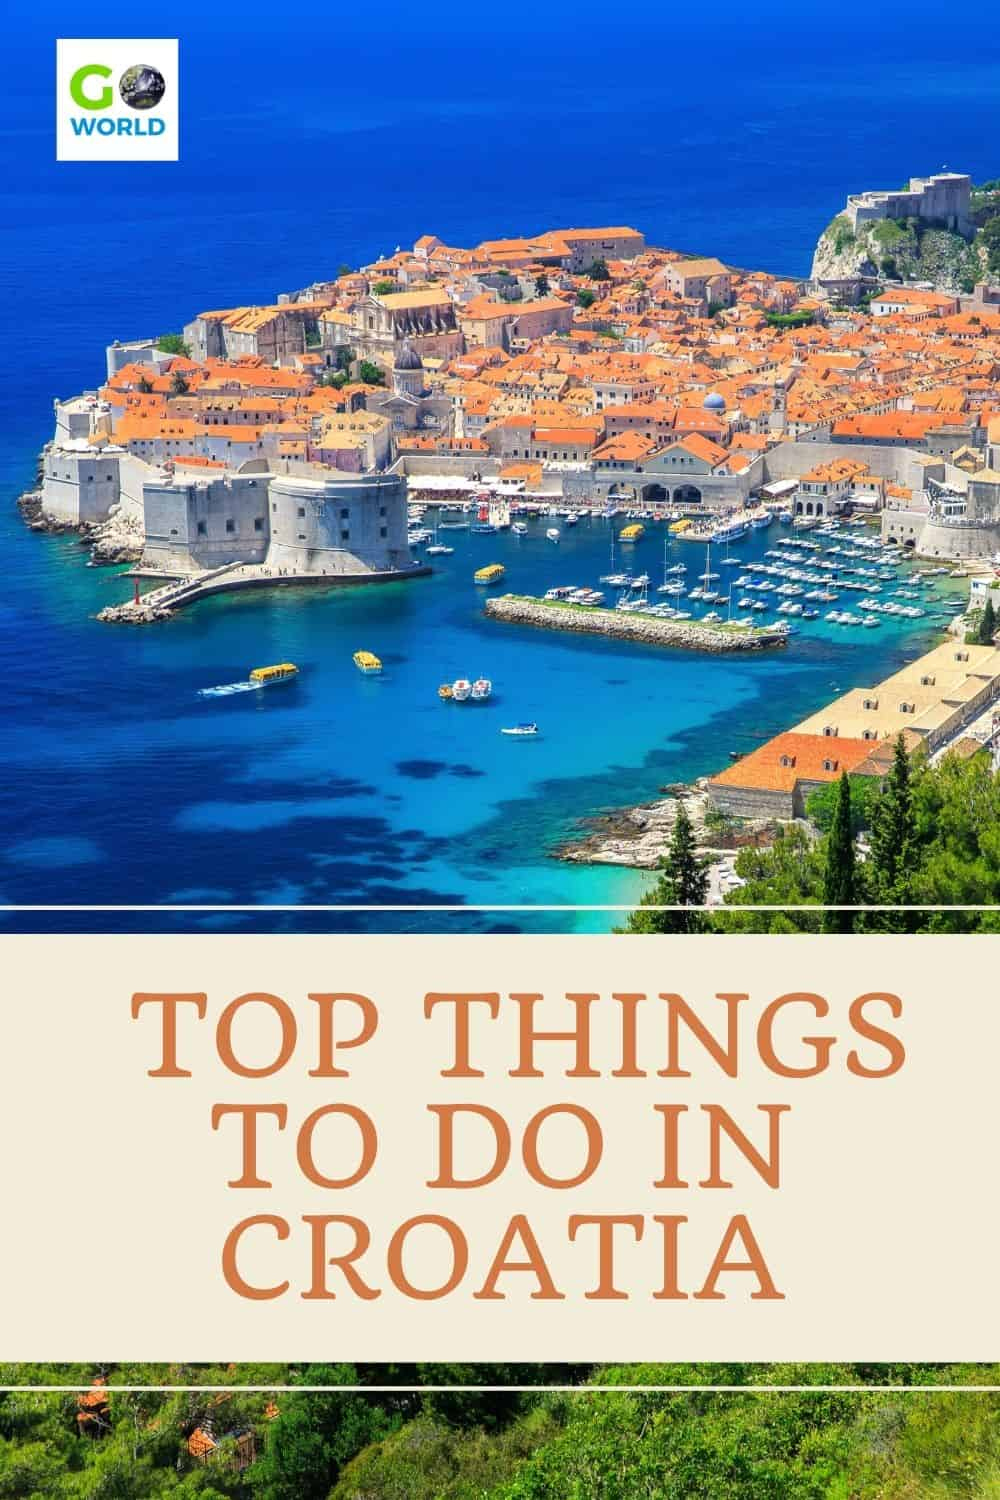 Looking for the top things to do in Croatia? Charming towns, walled cities, stunning coastline and cascading waterfalls are just a few ideas. #CroatiaTravel #thingstodoinCroatia #Europetravel